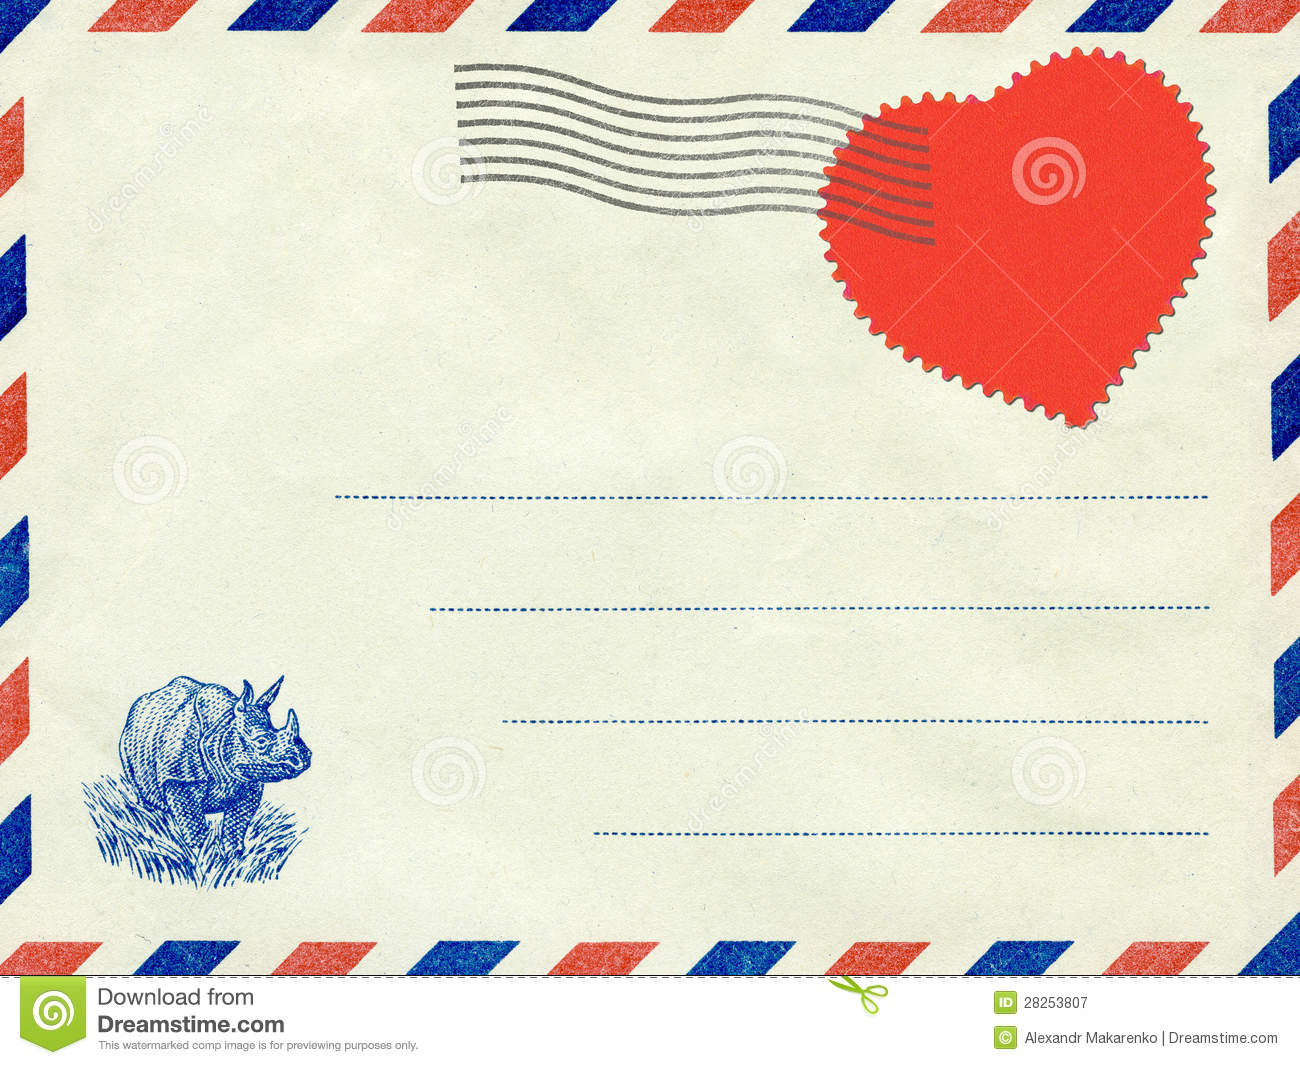 Royalty Free Stock Photography: Collage, a love letter. Vintage ...